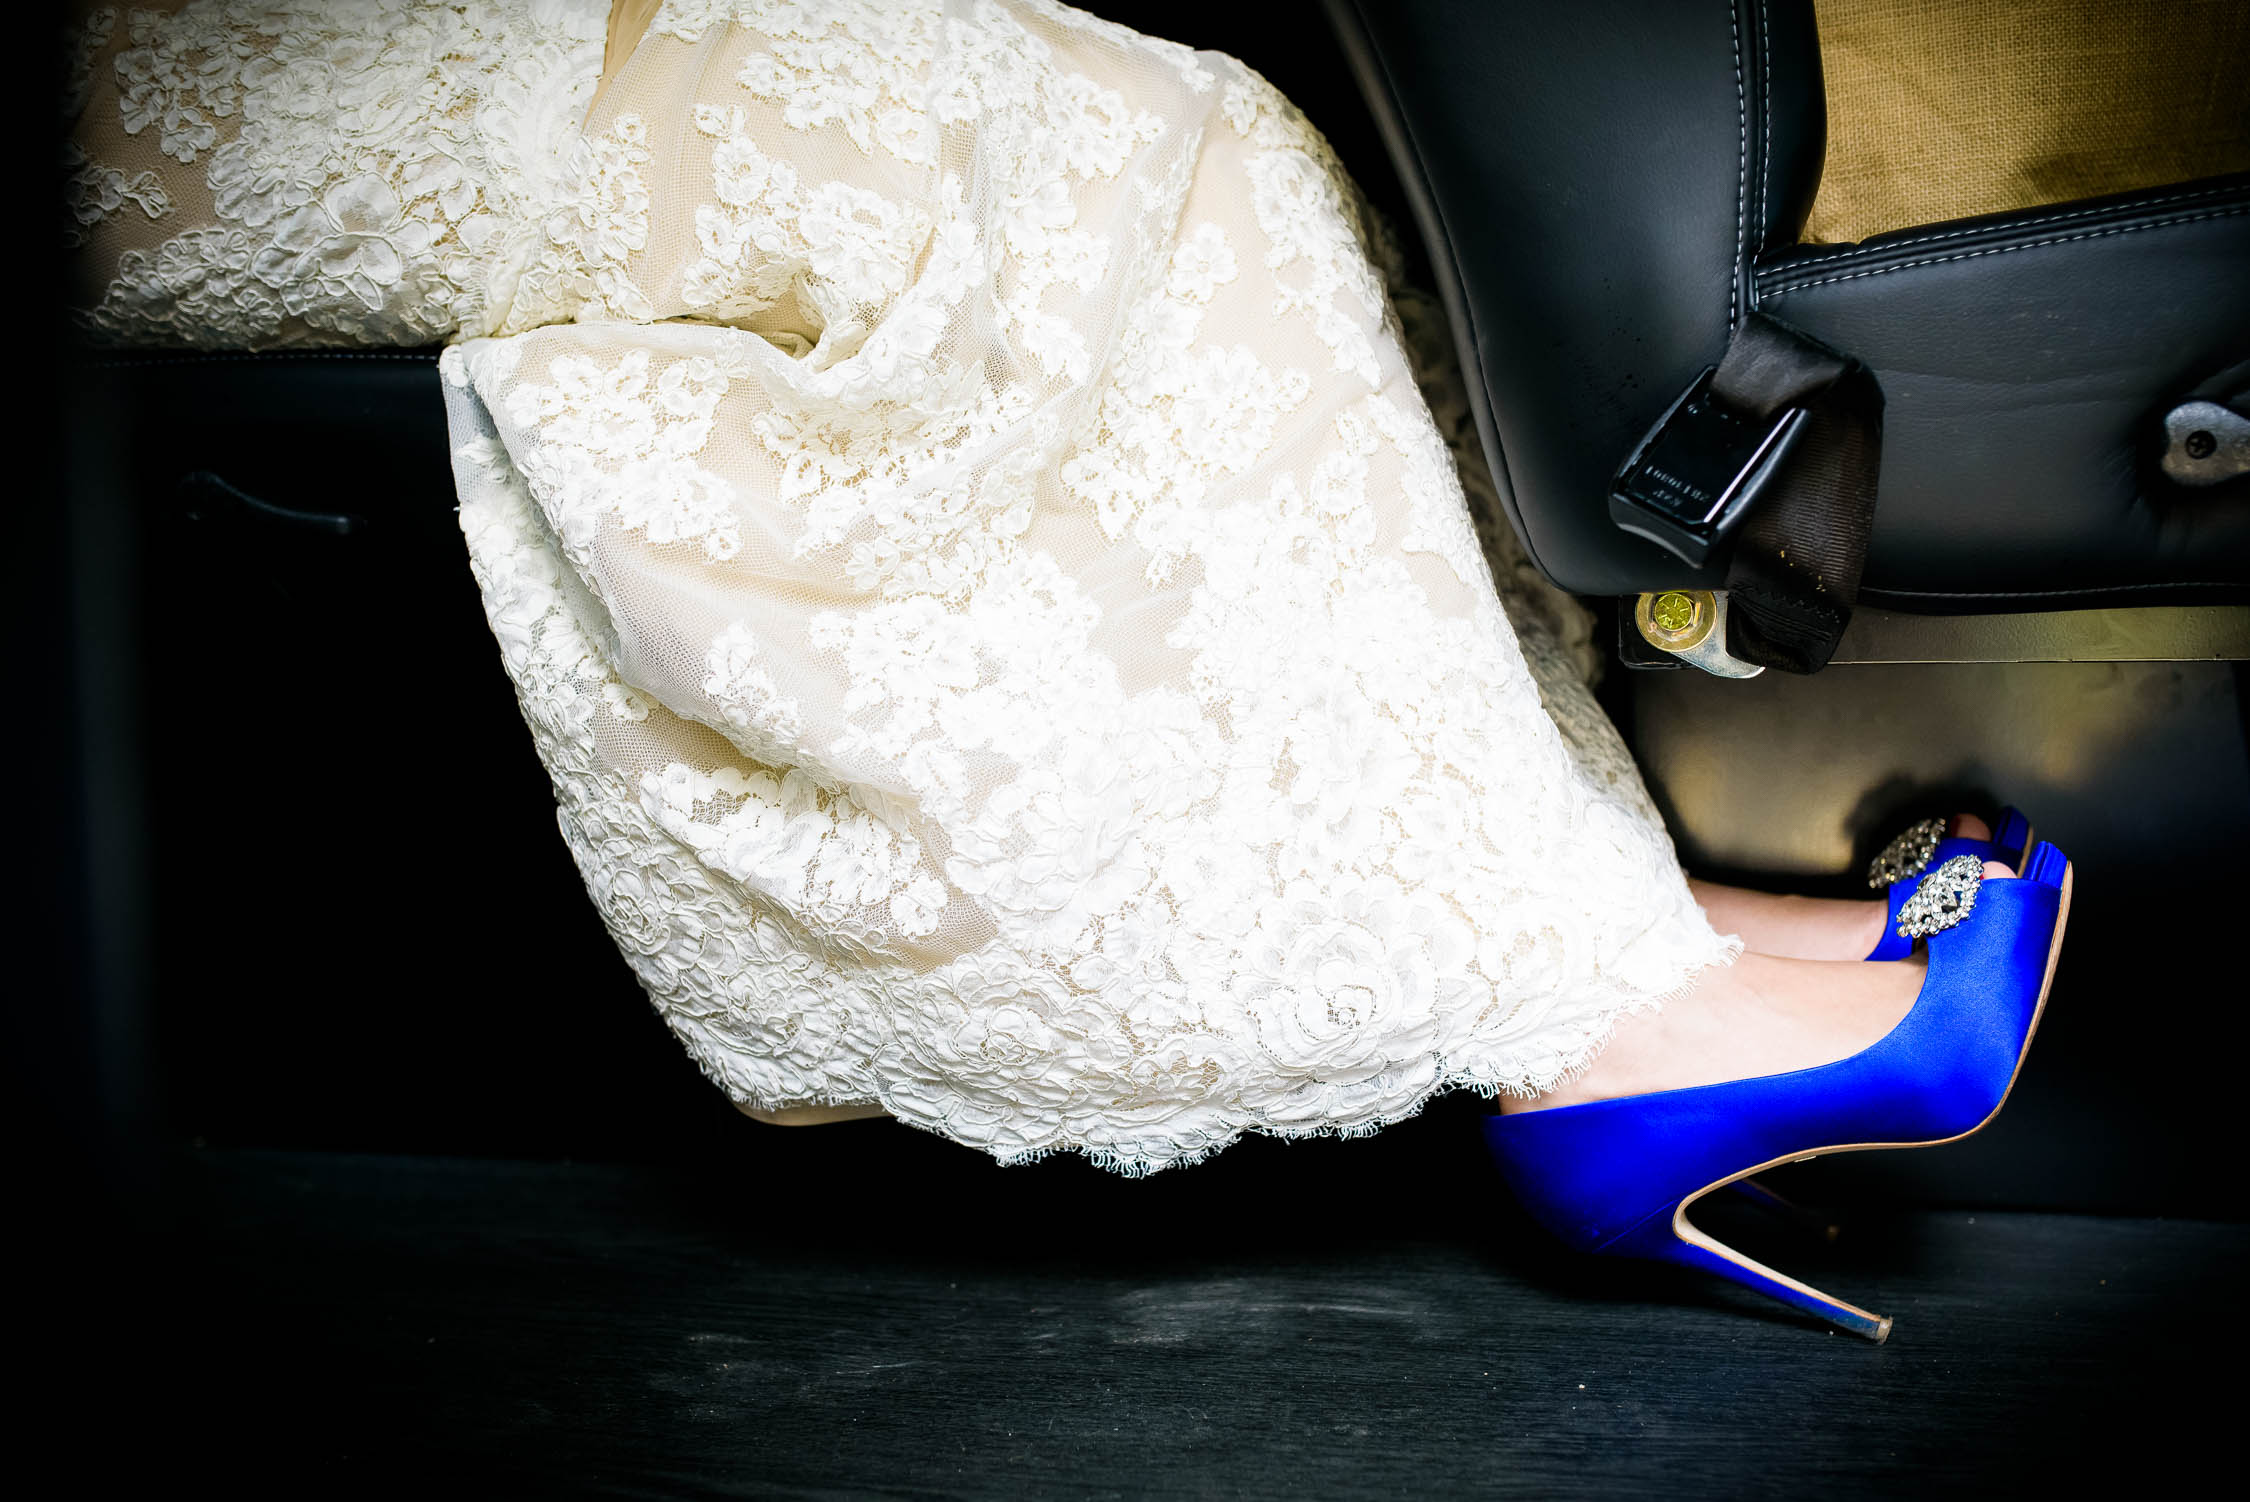 Creative detail photo of the bride's shoes during a University of Chicago wedding.